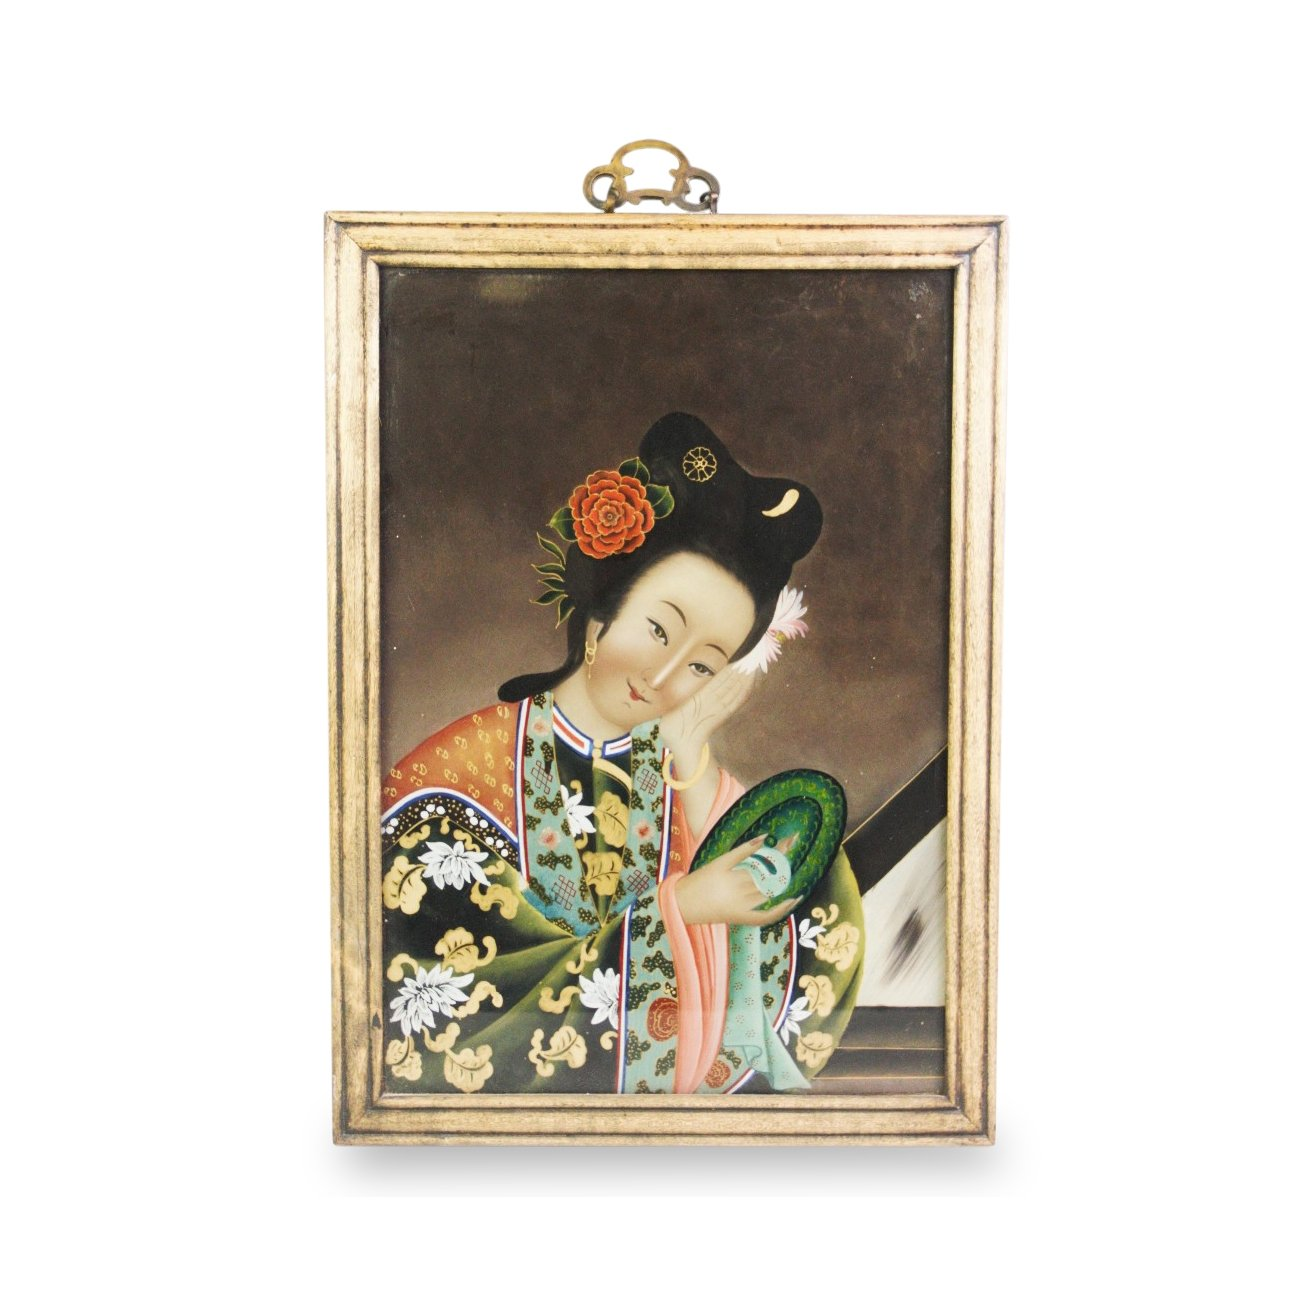 Vintage Chinese Reverse Glass Painting Of A Courtesan  - Ca 1930's